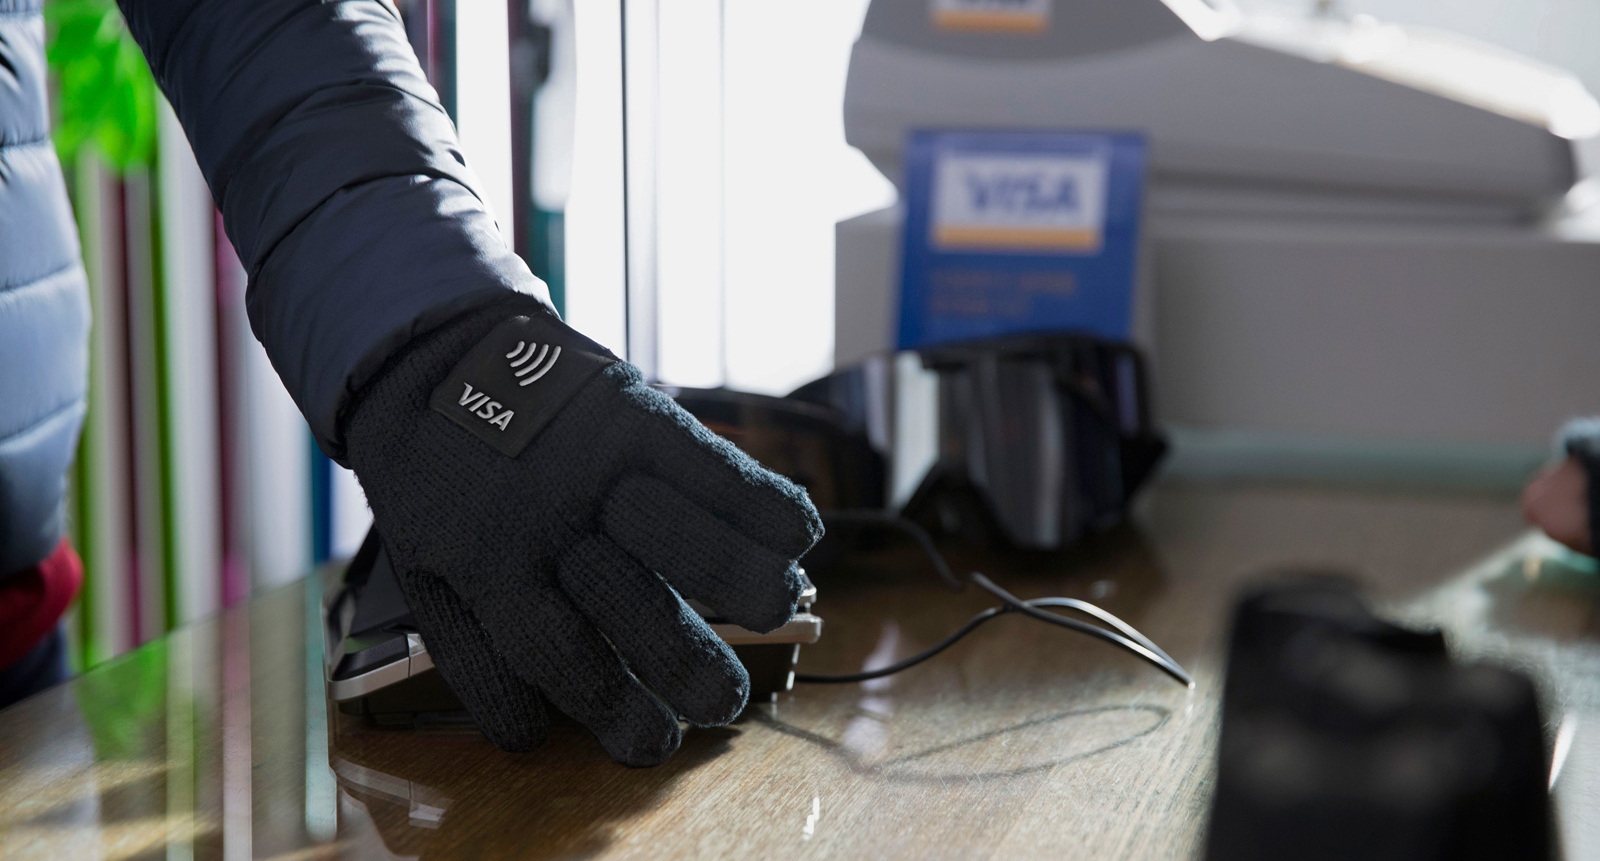 Pay with Visa winter gloves